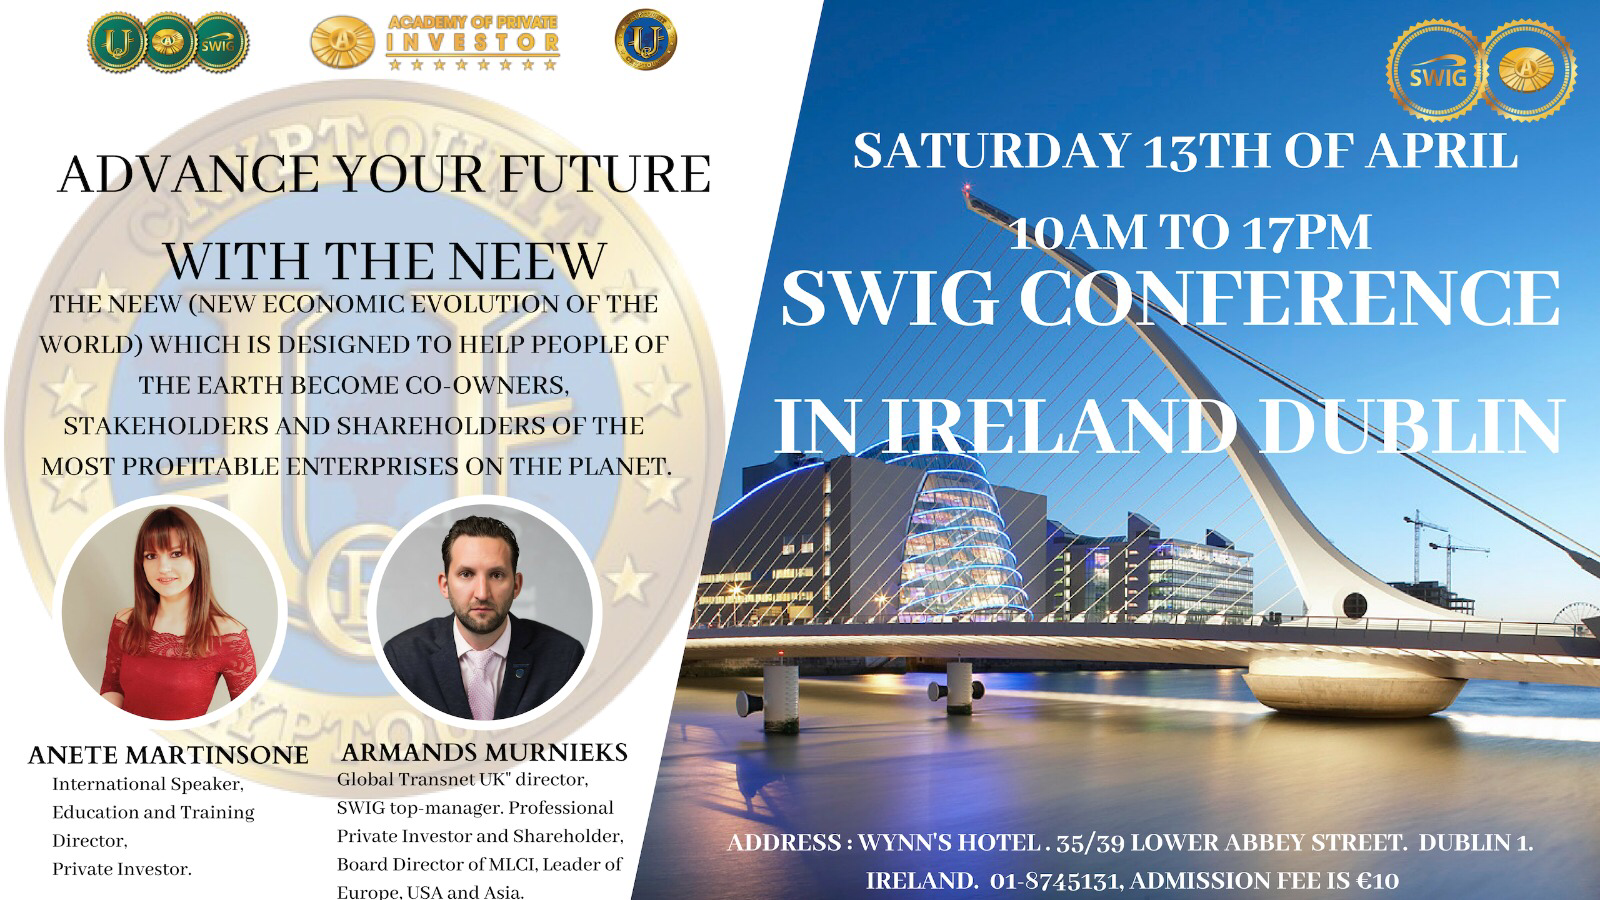 SWIG CONFERENCE IN IRELAND DUBLIN by SkyWay Invest Group